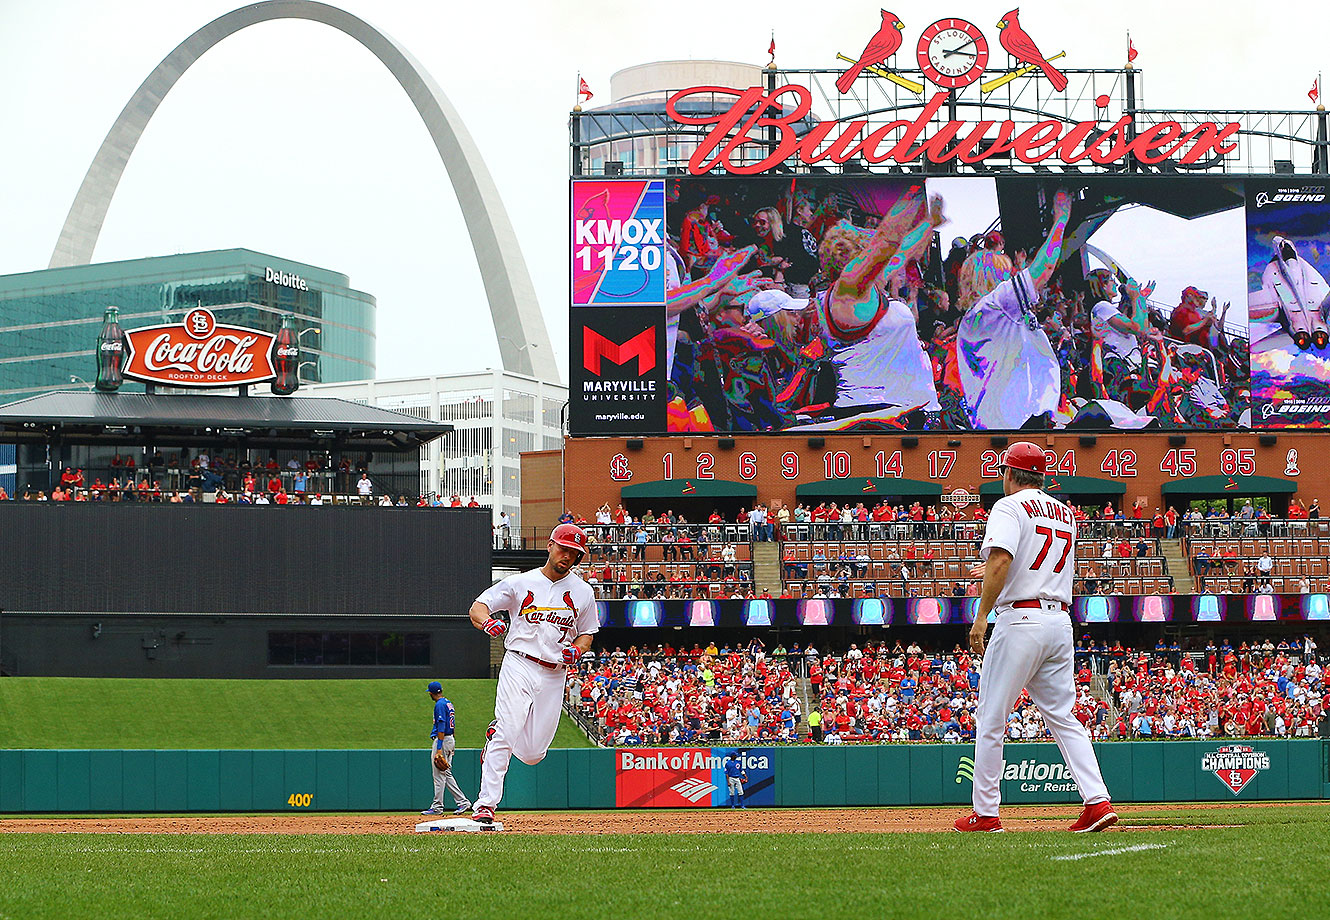 St. Louis Cardinals left fielder Matt Holliday (7) as seen rounding third base after hitting a home run in the bottom of the 6th inning at Bush Stadium.